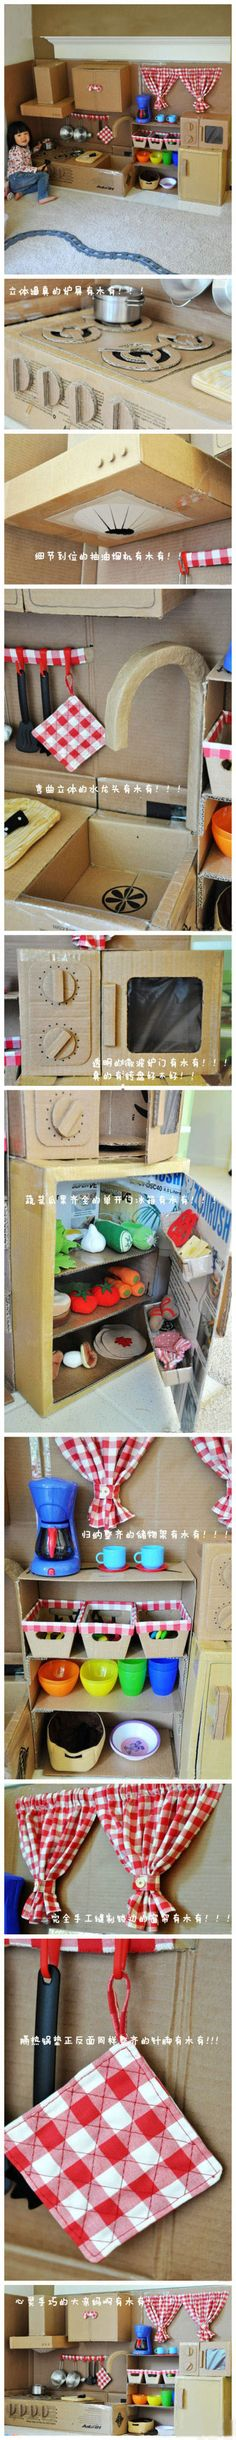 This is a mother handmade cardboard version of mini kitchen, cute | diyfunidea.com